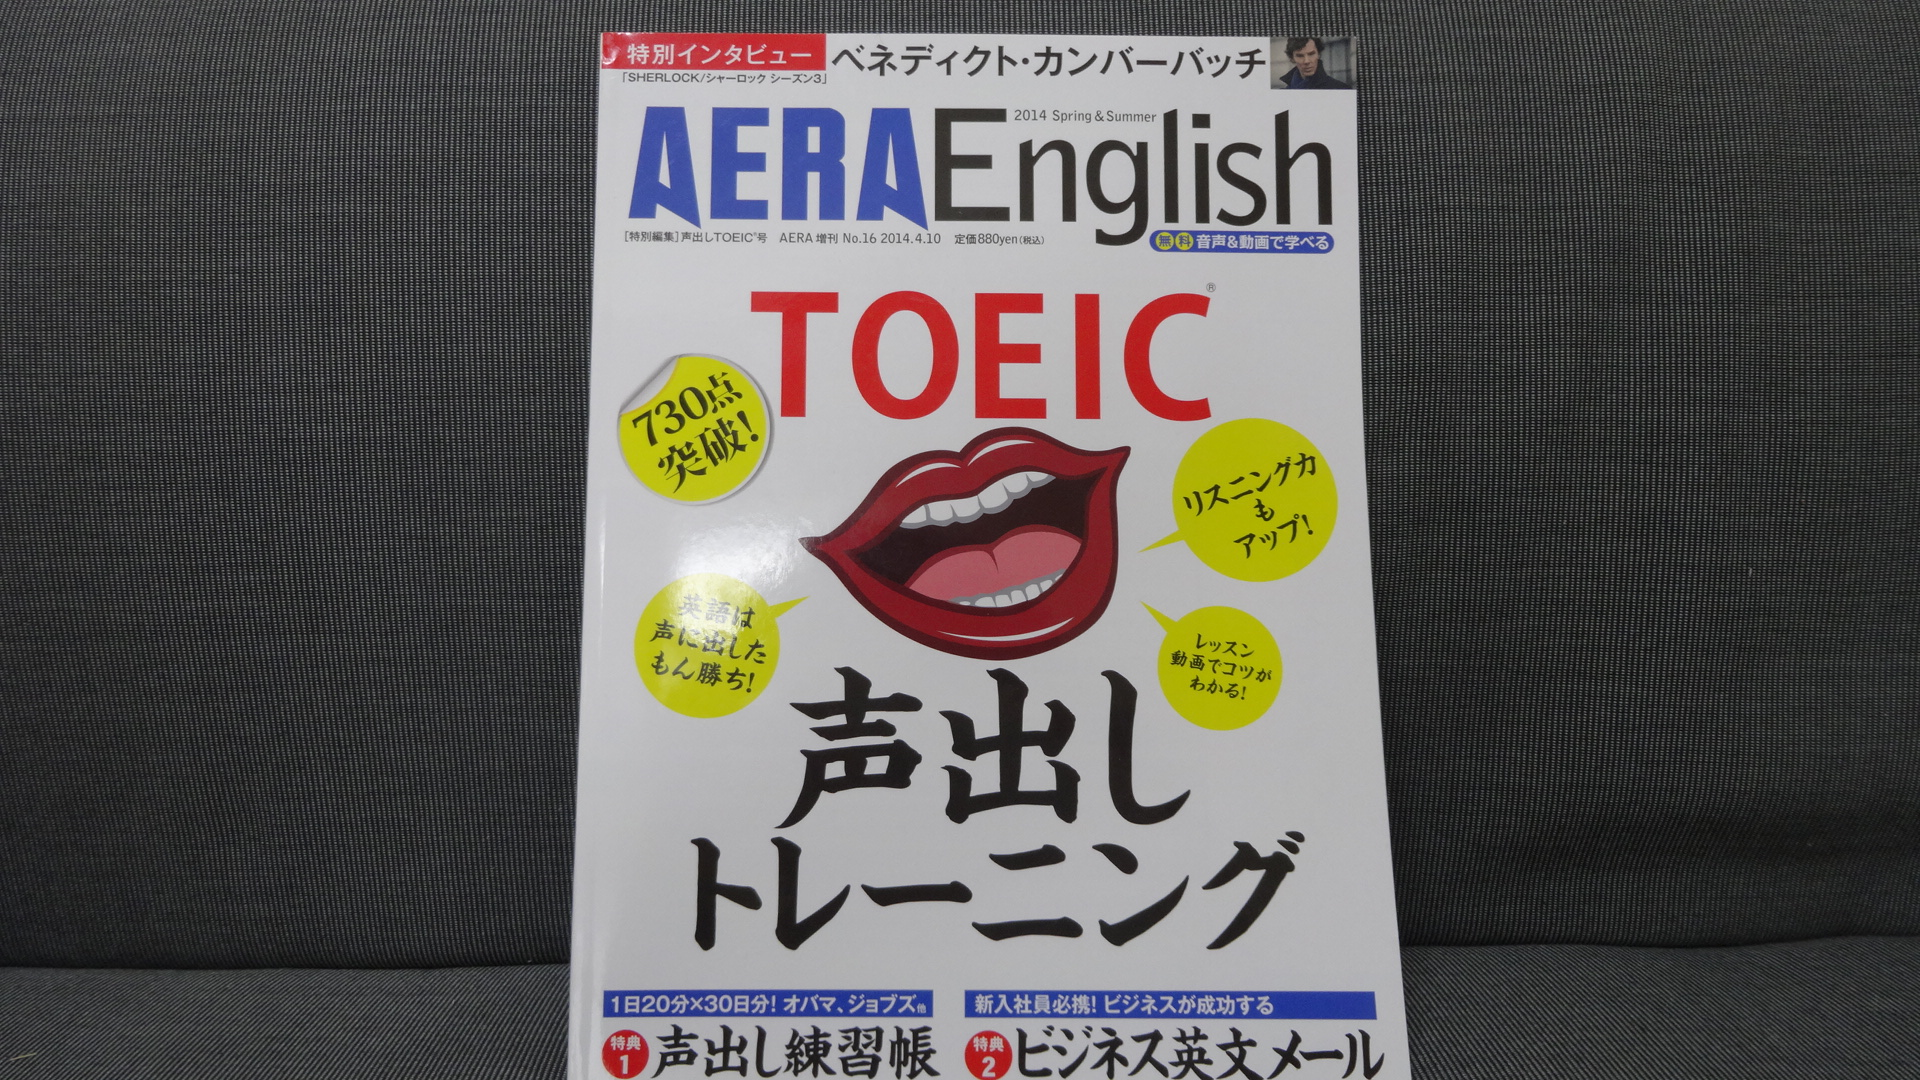 「AERA English 2014 Spring & Summer 」の感想・レビュー②